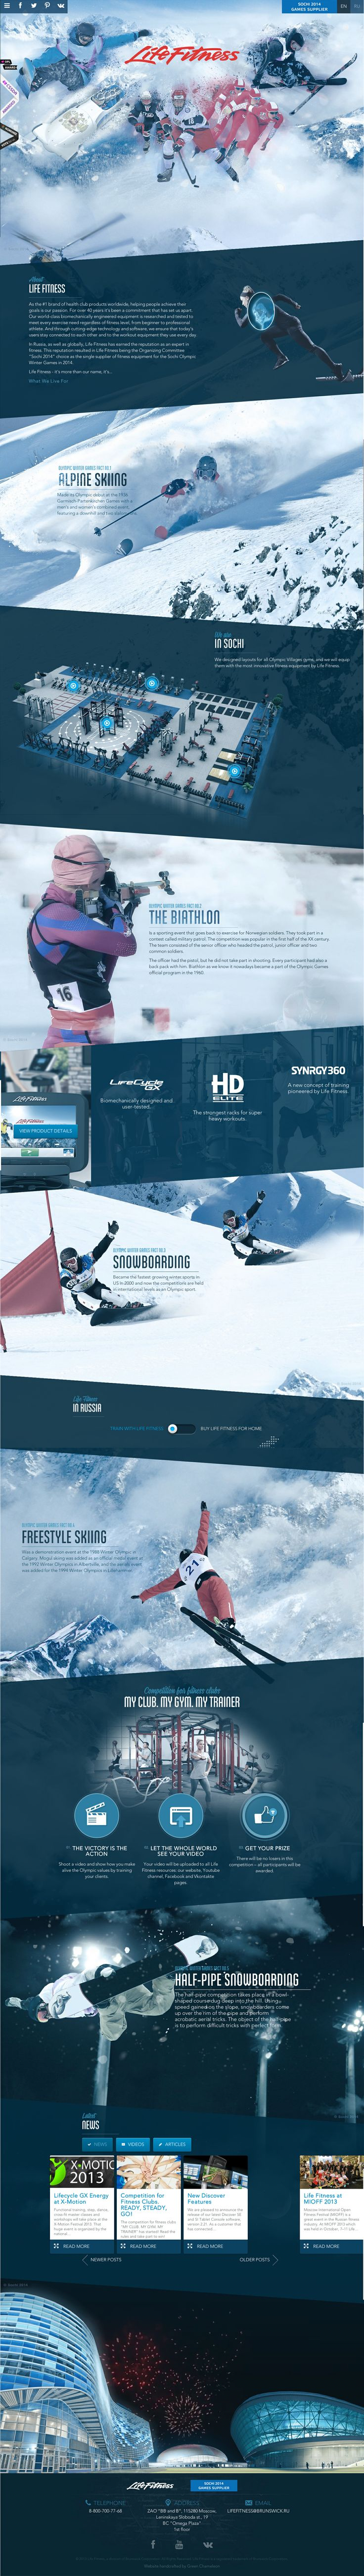 Lifetime Fitness Games Supplier in Sochi Russia For Winter Olympics 2014 Info Webpage